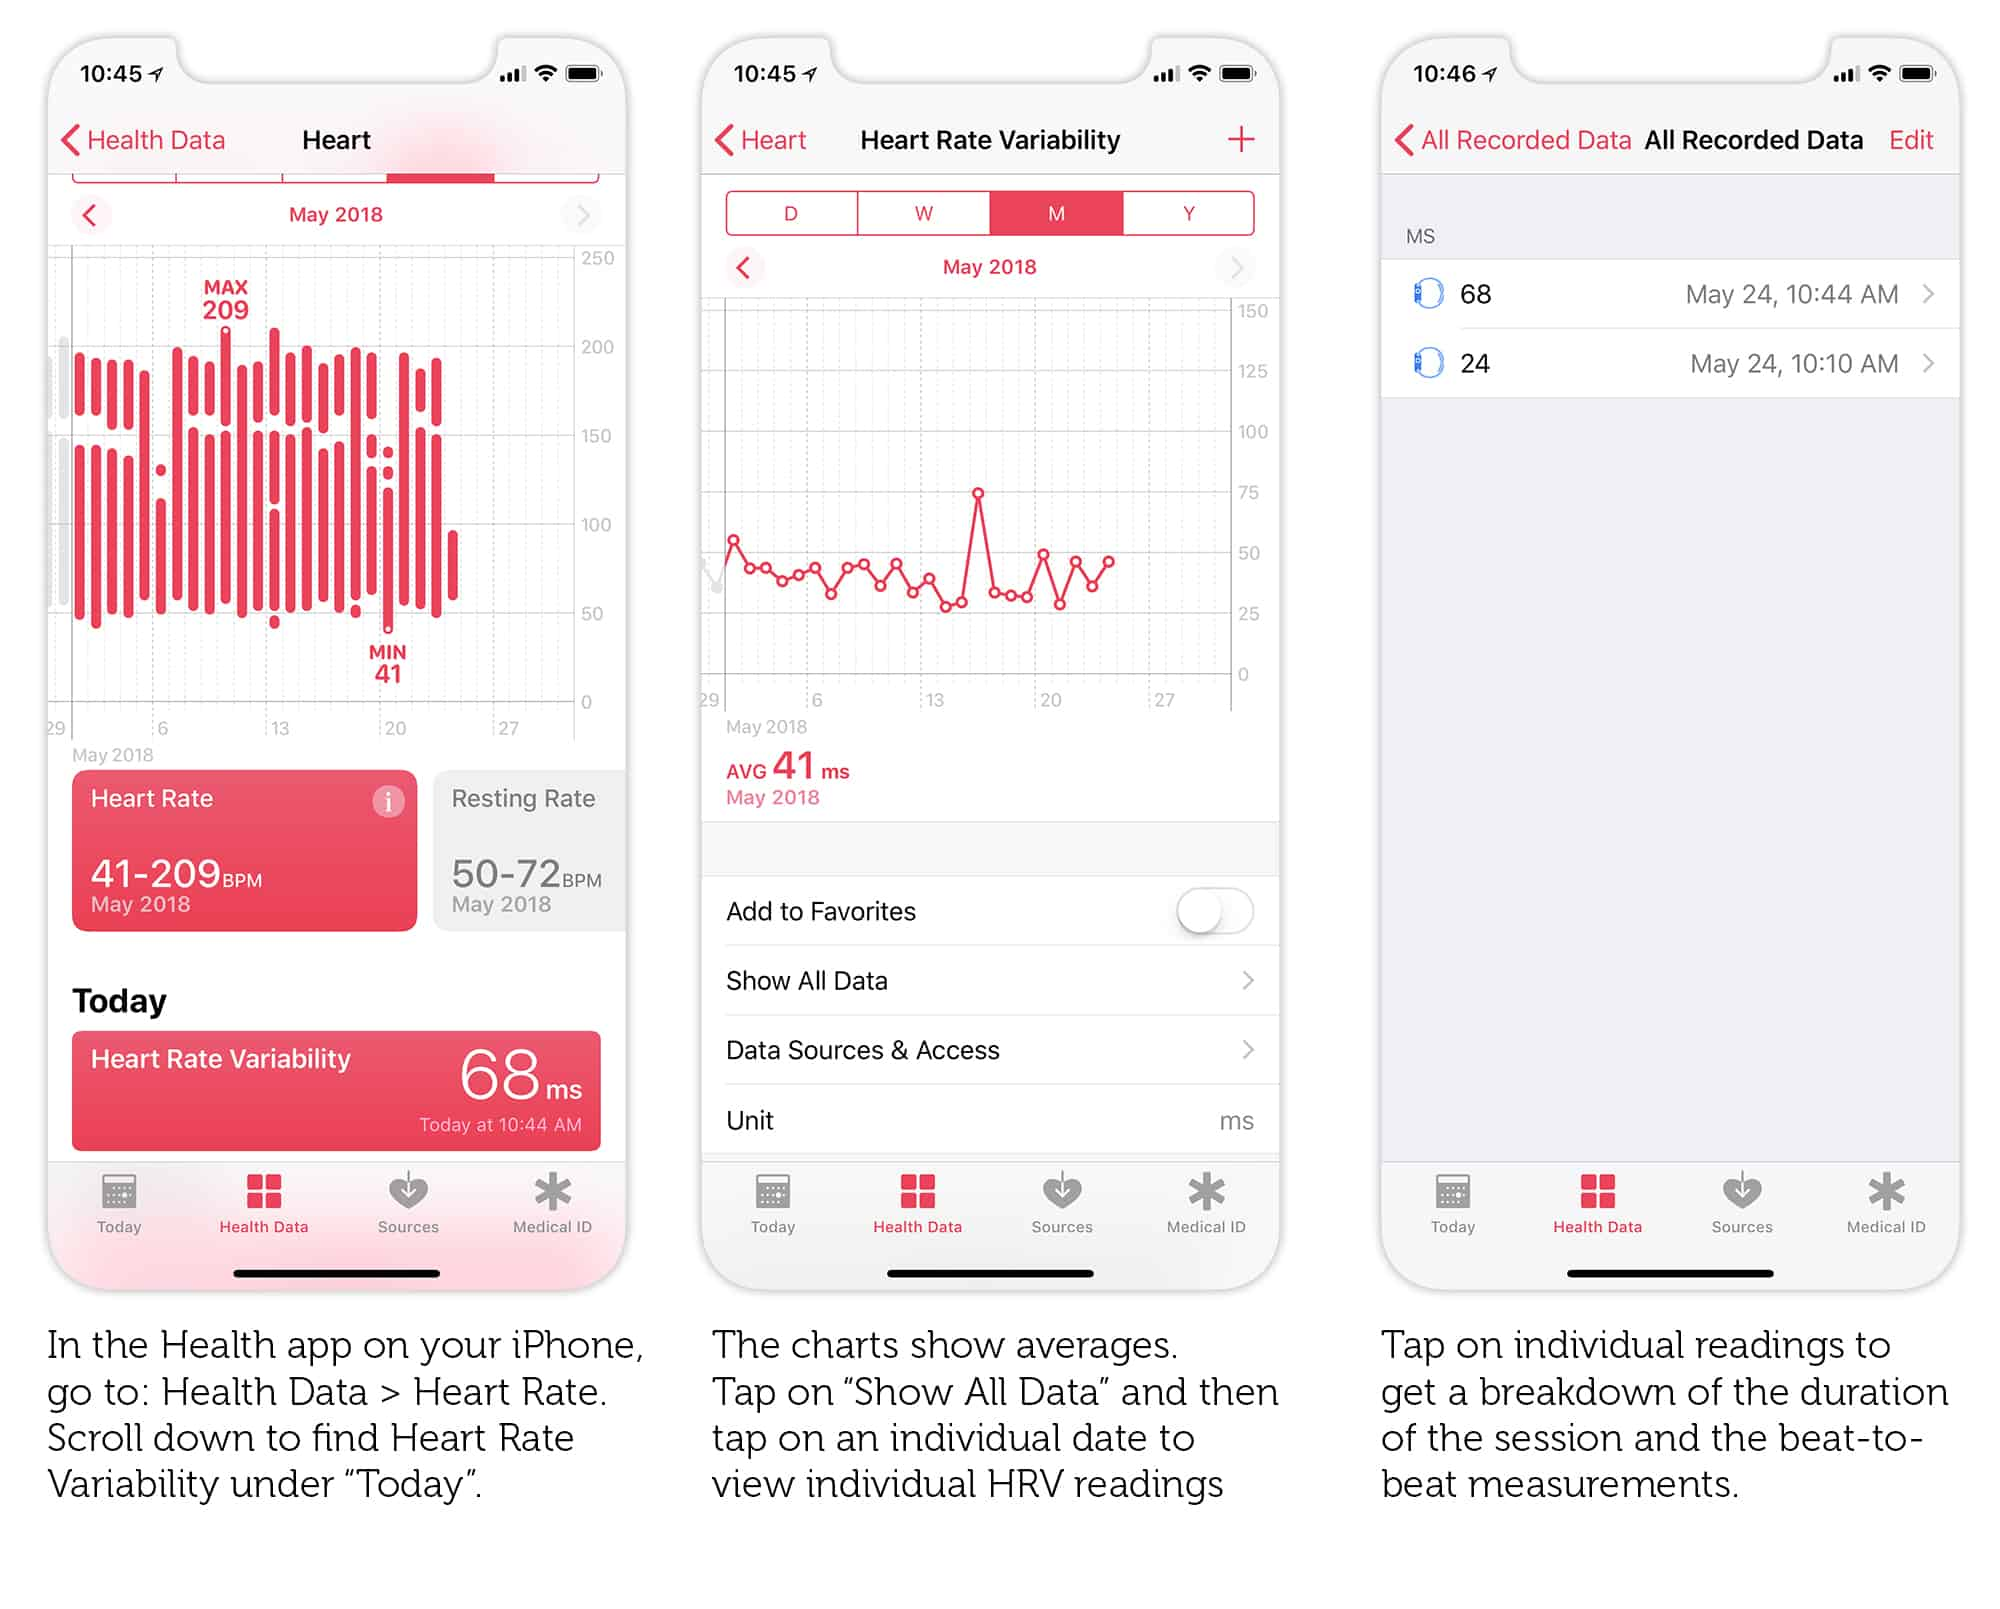 Check your Heart Rate Variability readings with the Health app on your iPhone